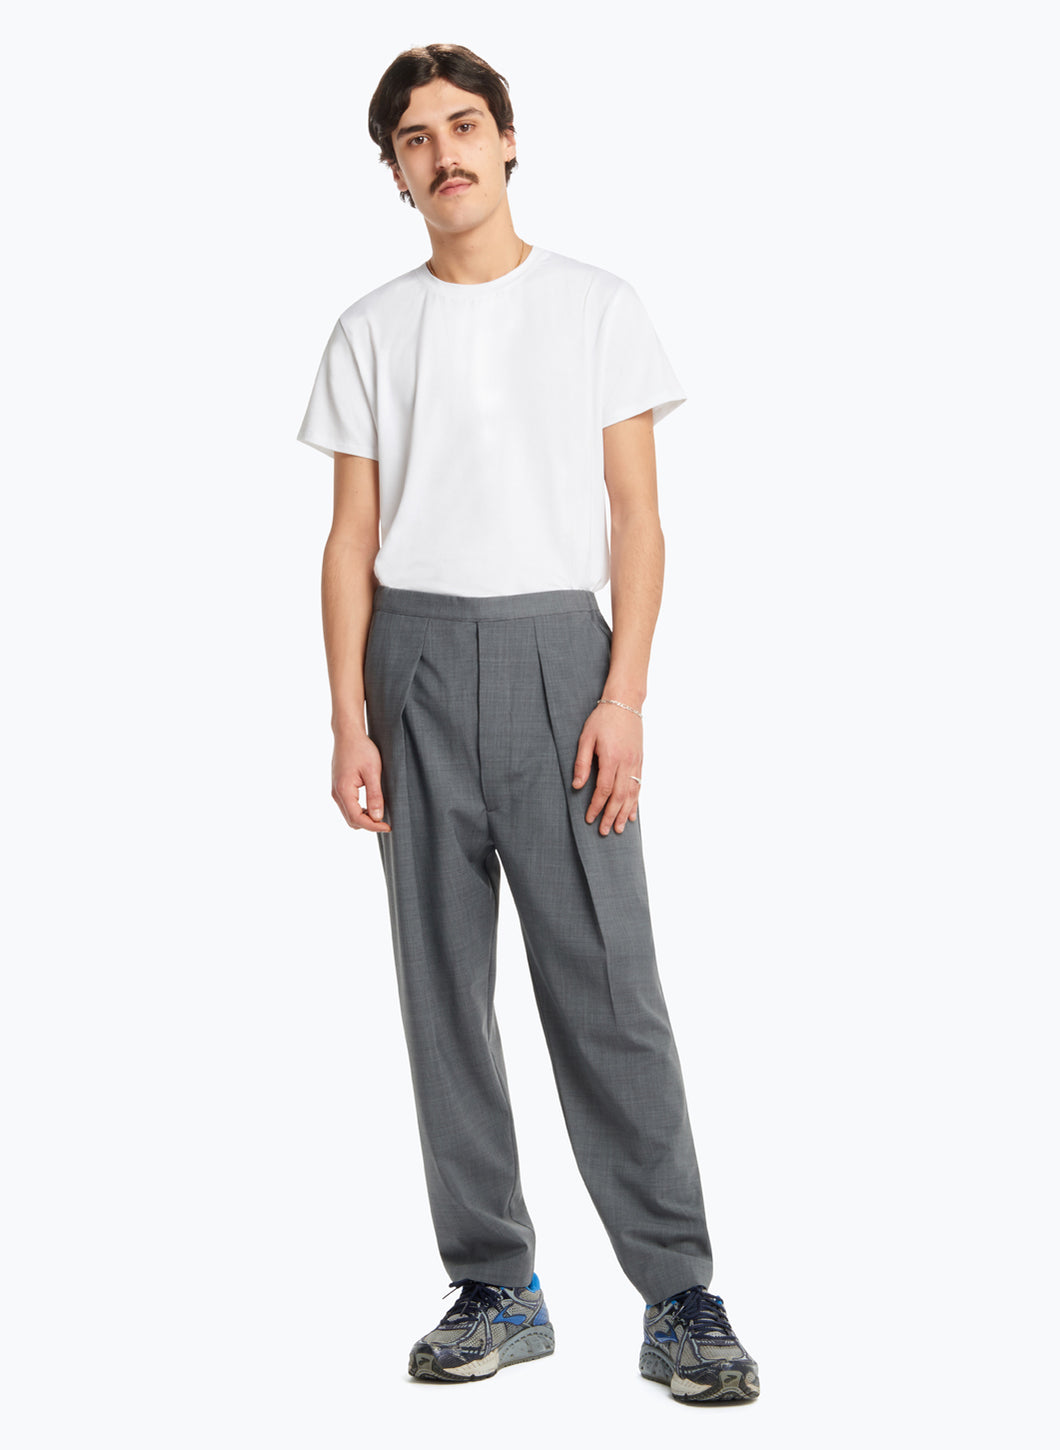 Elastic Waist Pants with Deep Pleats in Grey Worsted Wool